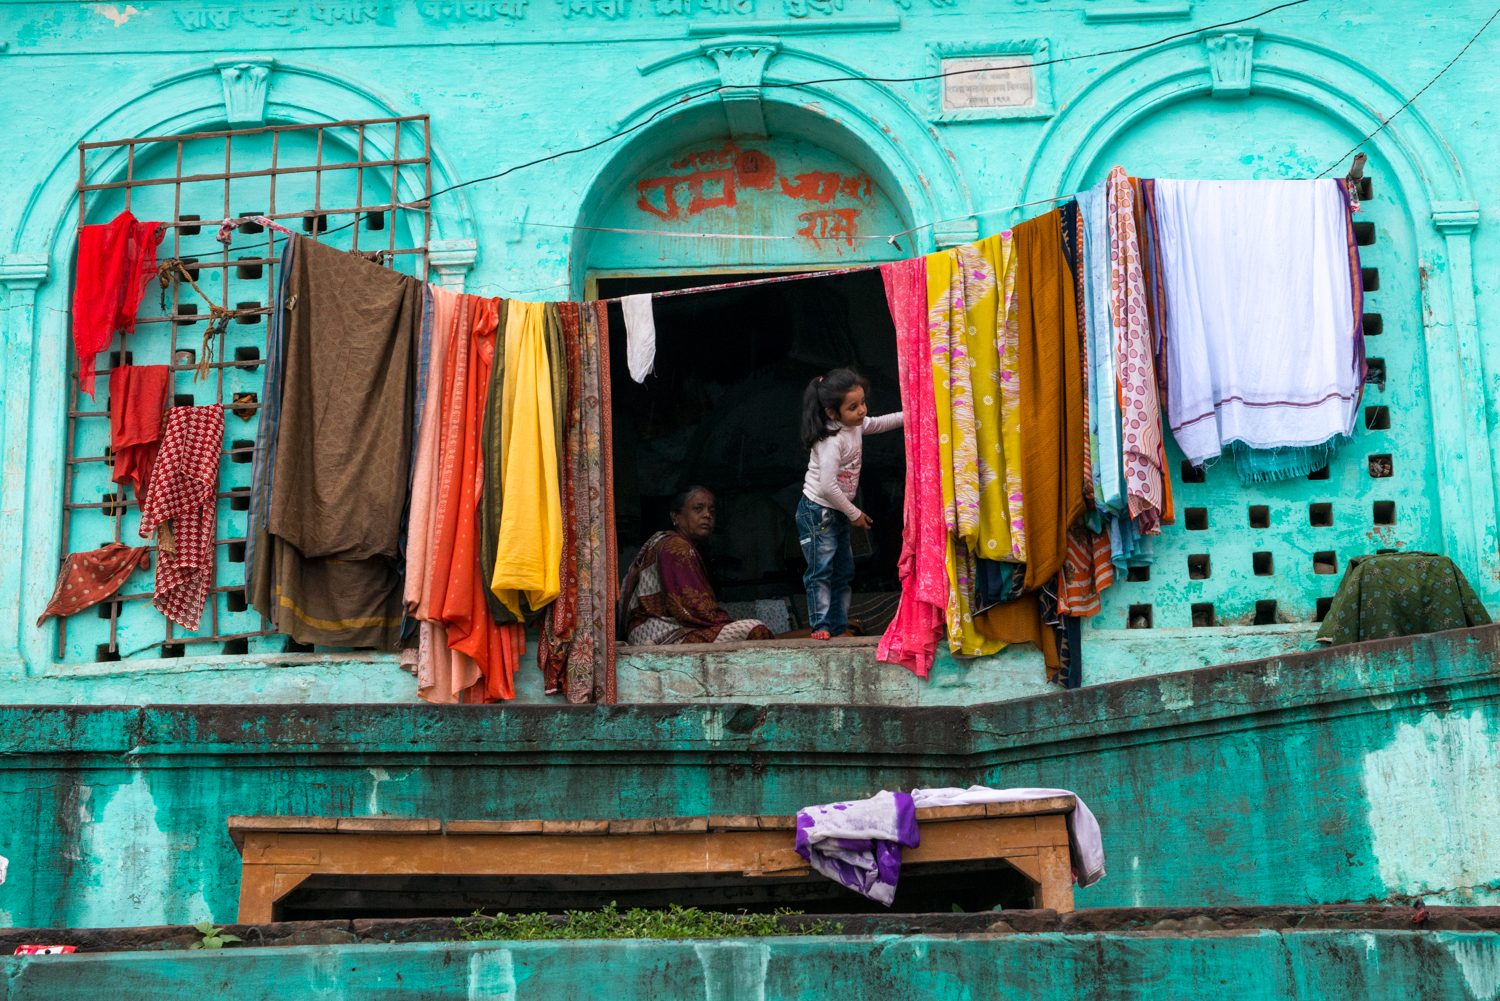 A young girl peaks out of her home to investigate a noise - Varanasi, India.